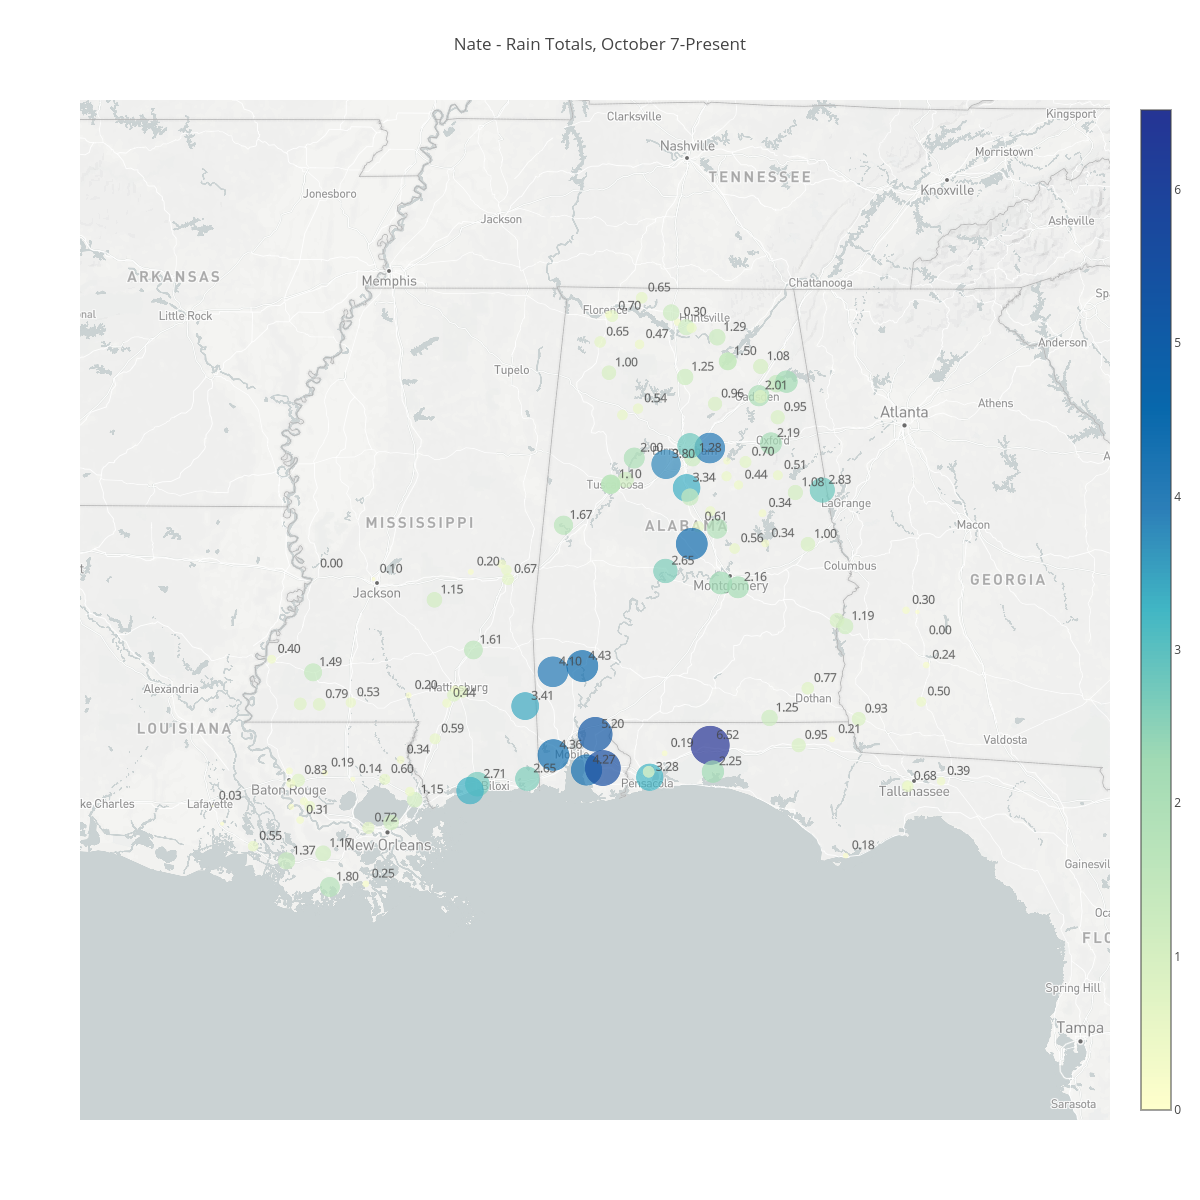 Nate - Rain Totals, October 7-Present | scattermapbox made by Bigdata153 | plotly